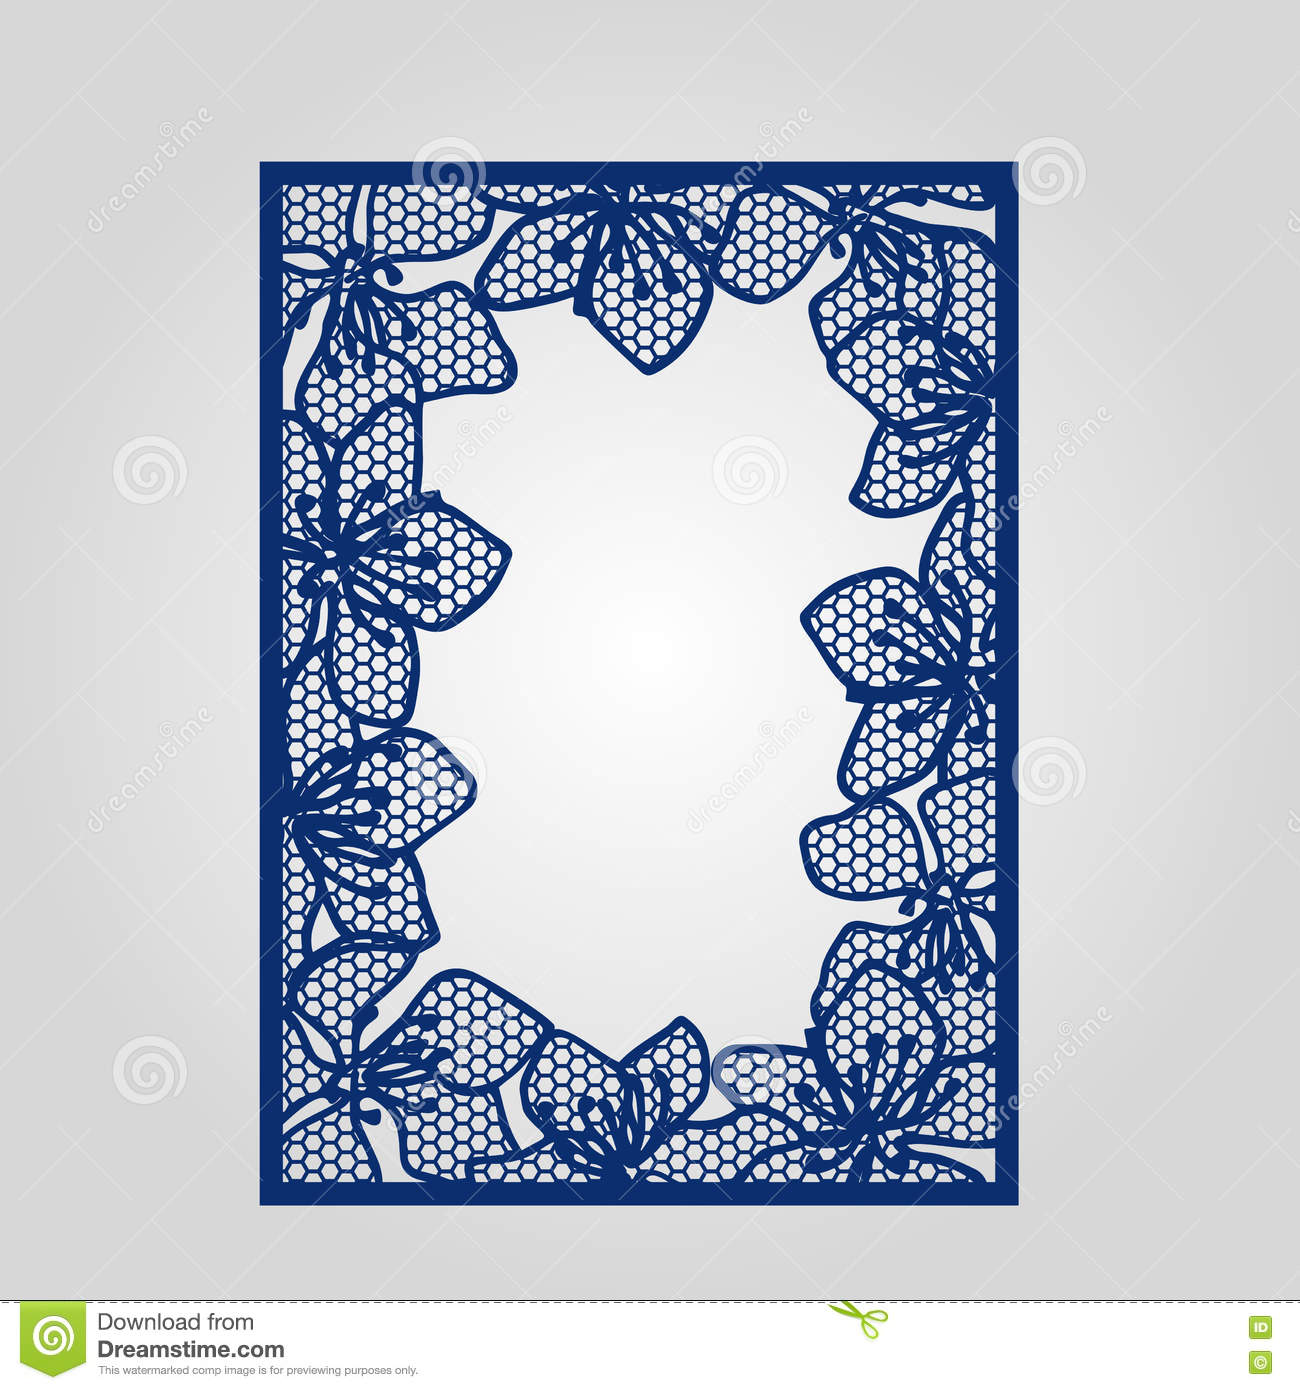 Abstract Cutout Panel For Laser Cutting, Die Cutting Or Stencil ...